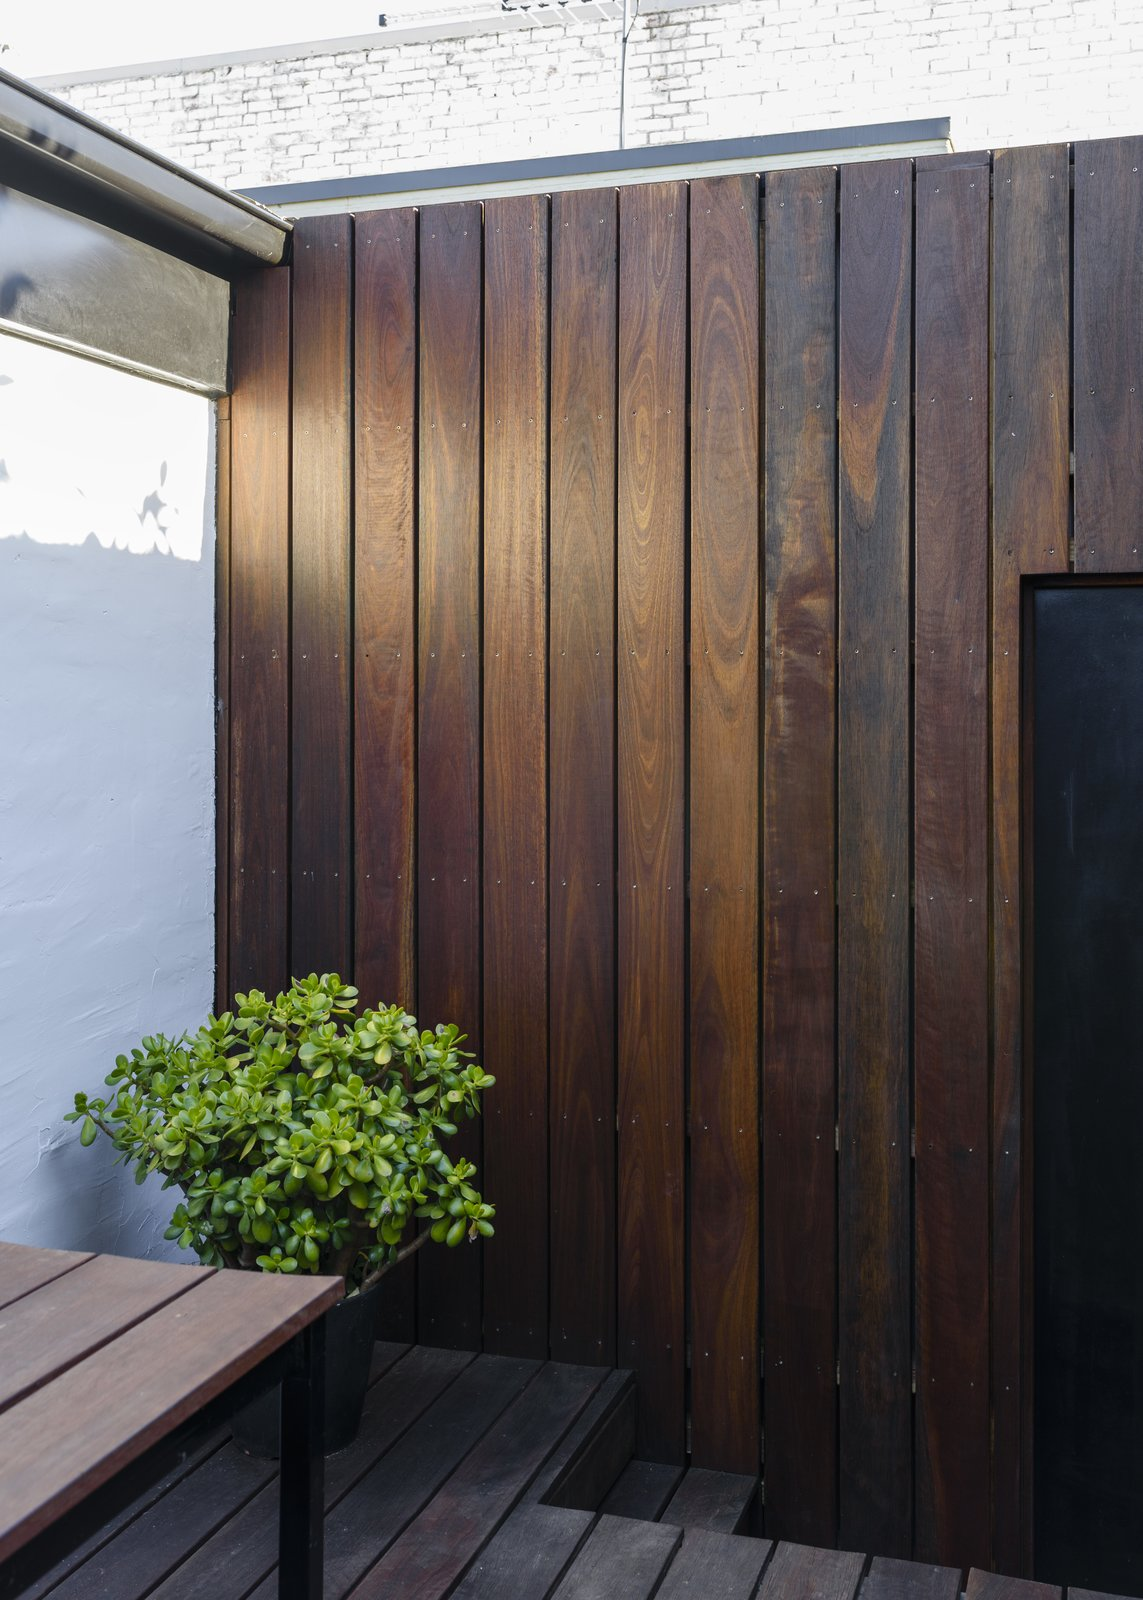 Courtyard wall detail Tagged: Outdoor, Back Yard, Shrubs, Small Patio, Porch, Deck, Hardscapes, Gardens, Decking Patio, Porch, Deck, Planters Patio, Porch, Deck, Wood Fences, Wall, and Wood Patio, Porch, Deck.  Curtain Cottage by Otto Henkell